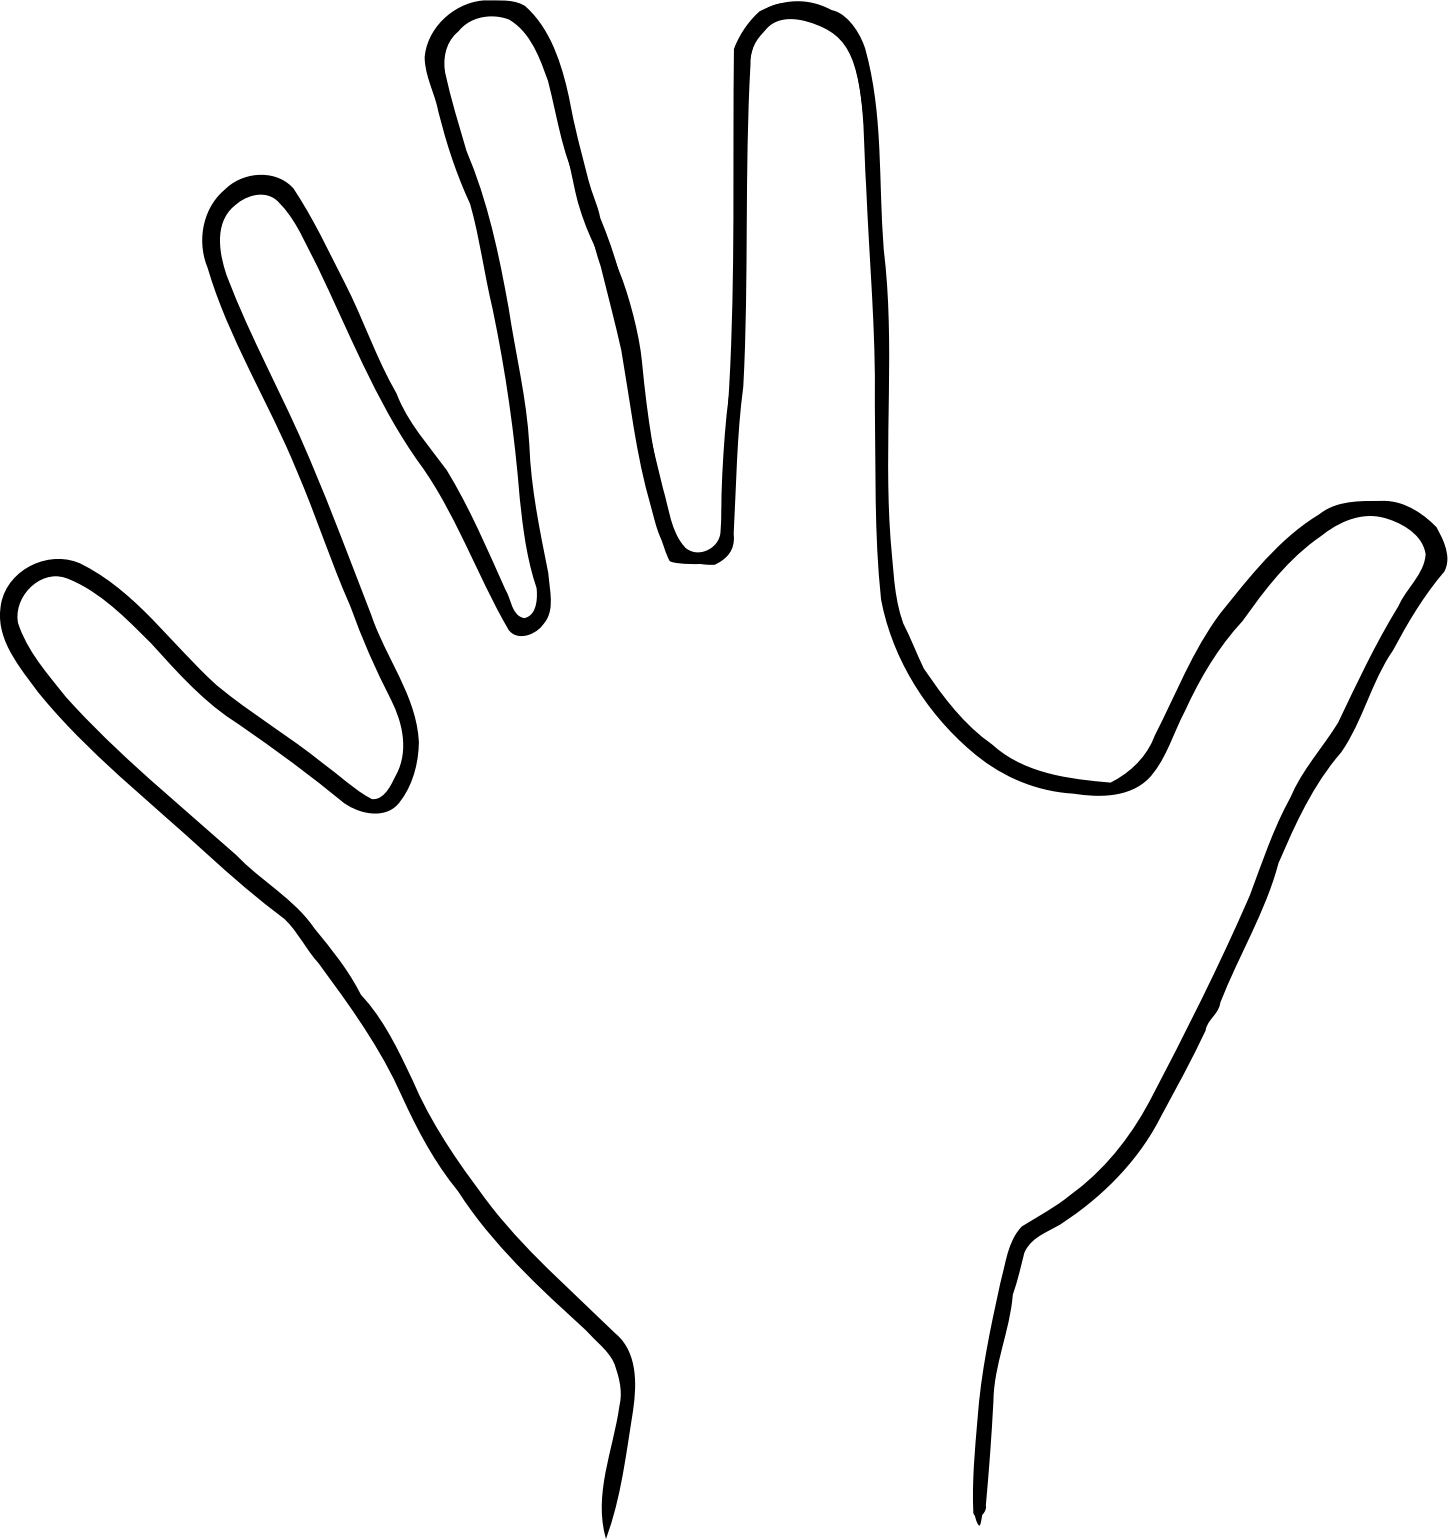 Hand Outline Cliparts Free Download Clip Art Free Clip Art